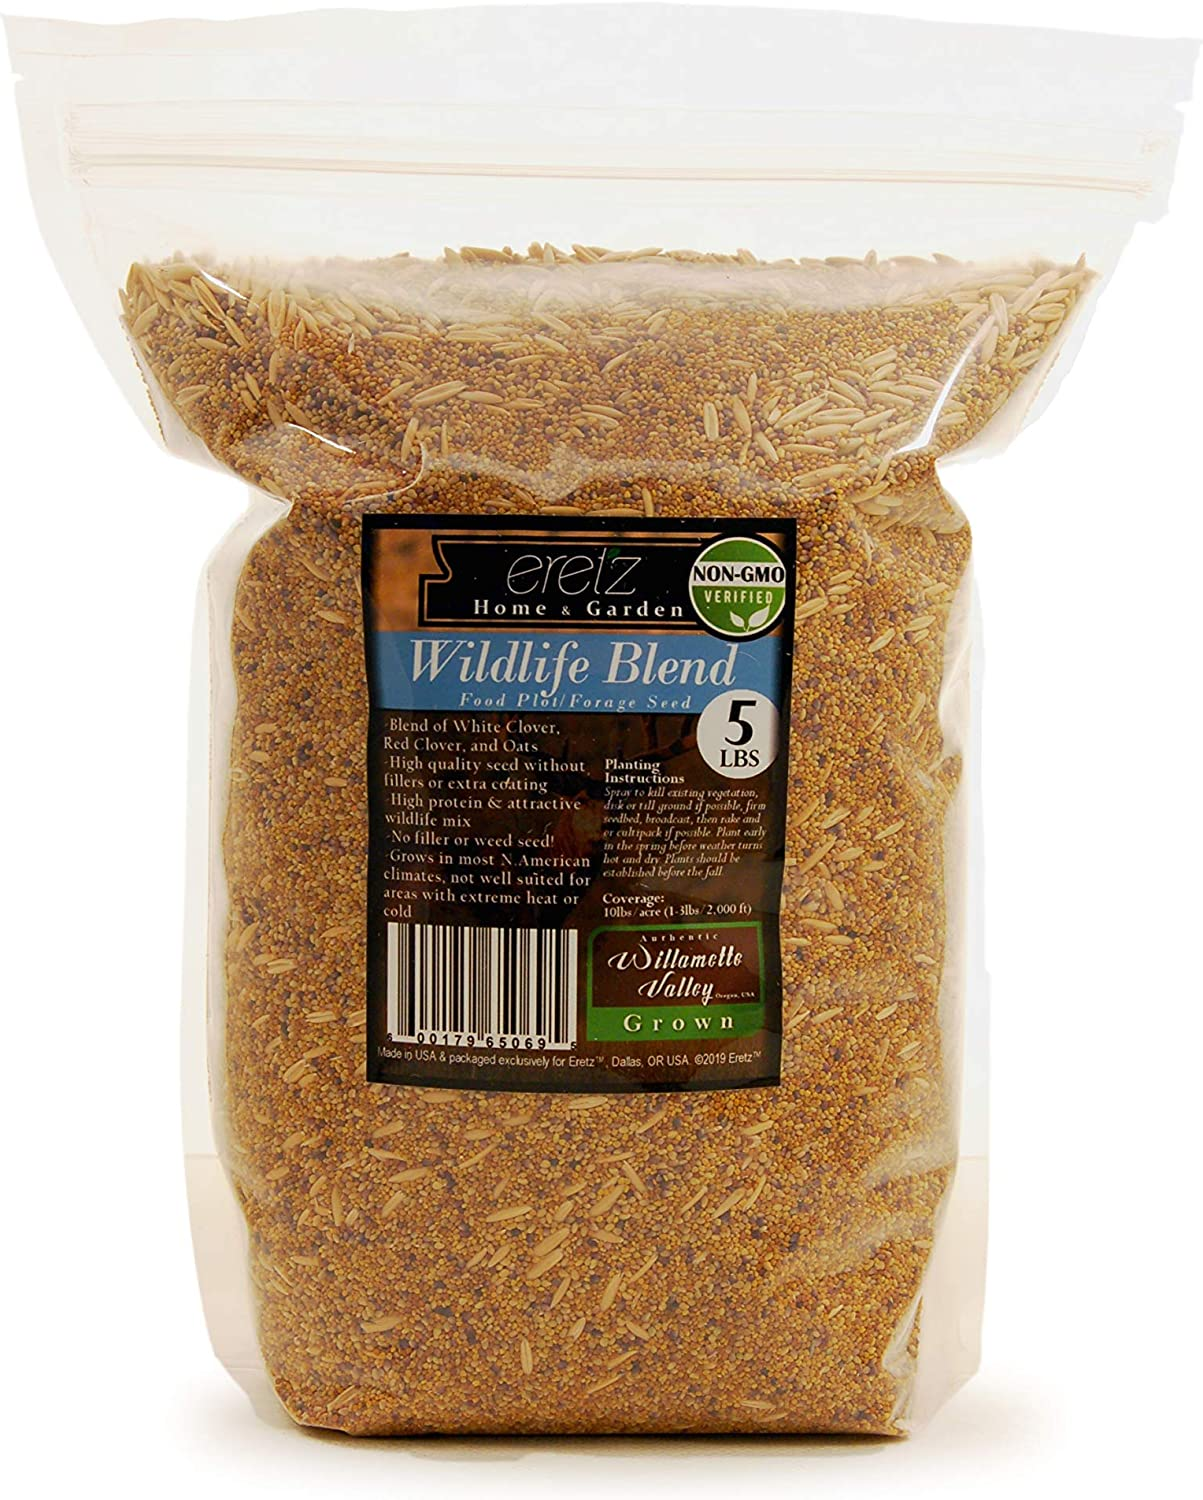 Wildlife Food Plot Blend & Forage Seed Mix by Eretz (5lb) - Choose Size! Willamette Valley, Oregon Grown, Attract and Feed: Deer, Turkeys, & More! No Coatings, No Weed Seeds.